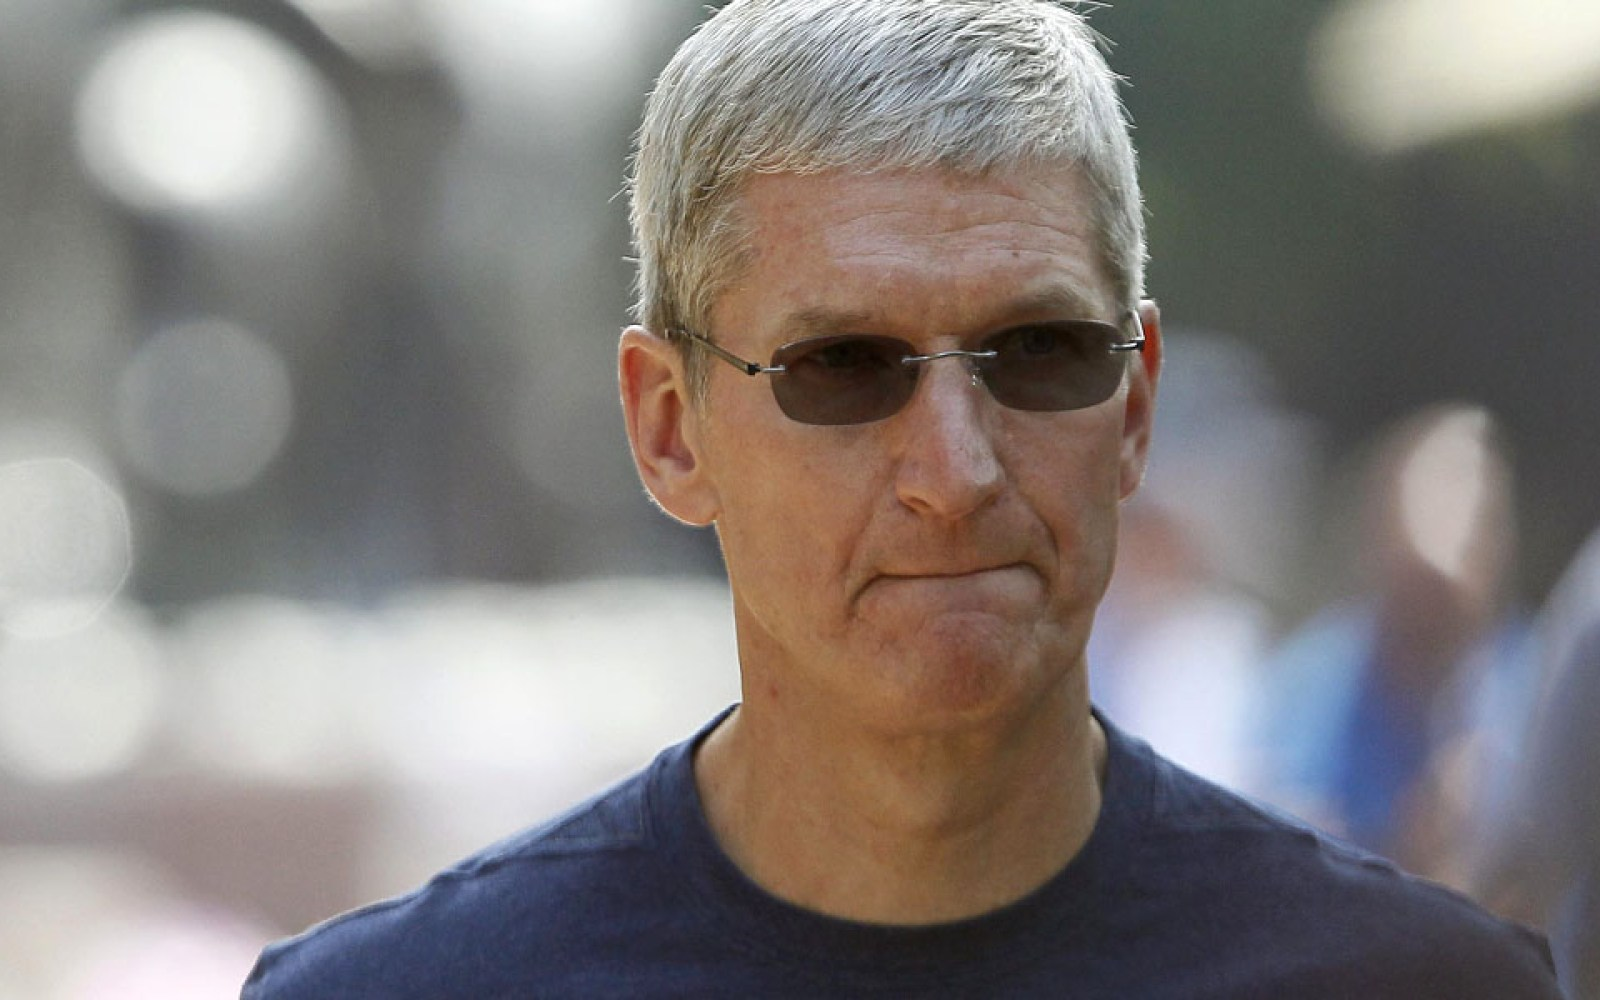 Tim Cook talks Apple Pay, Apple Watch and security on final day in China